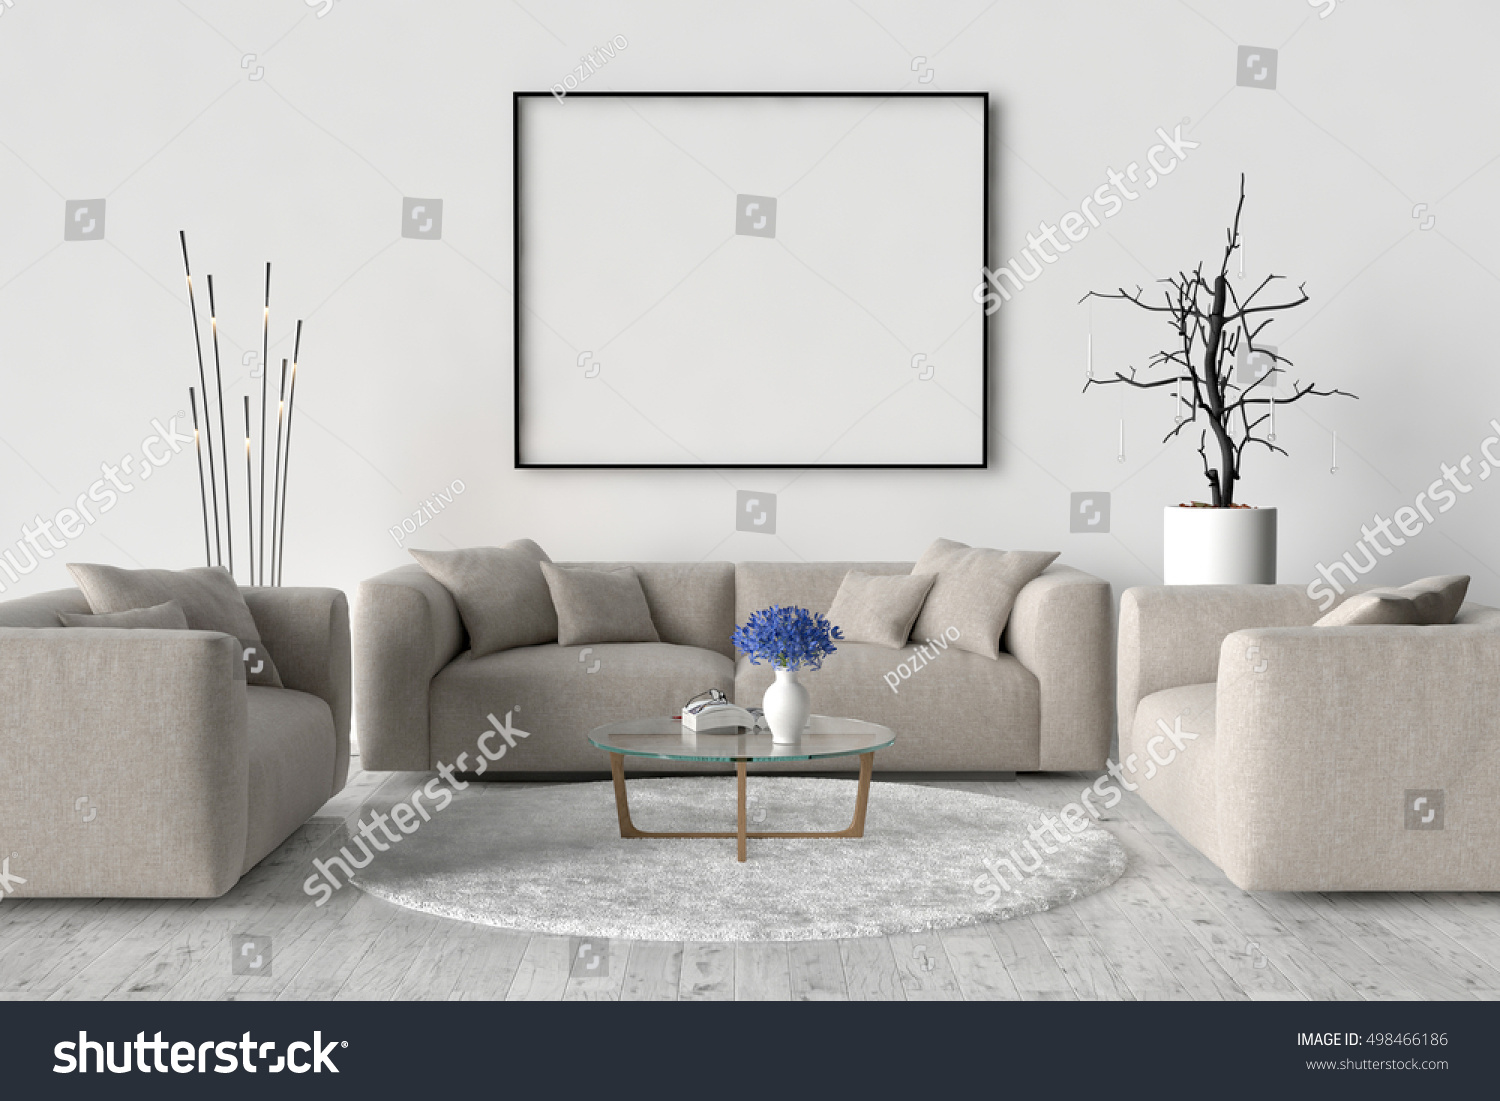 Living Room Sofa Two Chairs Table Stock Illustration 498466186 Shutterstock